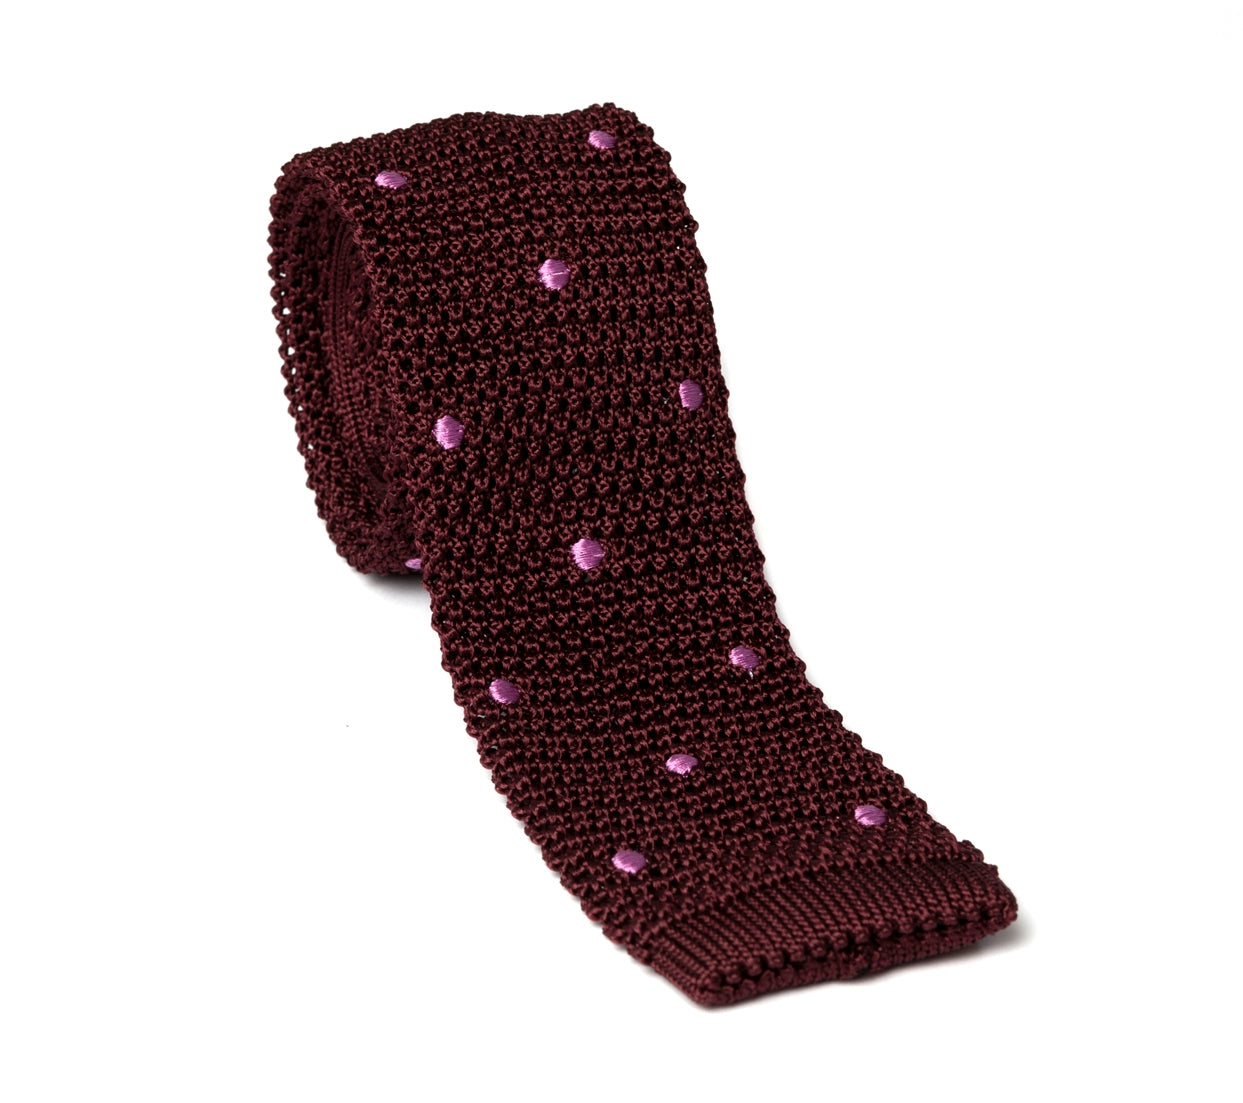 Regent -  Knitted Silk Tie - Maroon with Pink - Spot